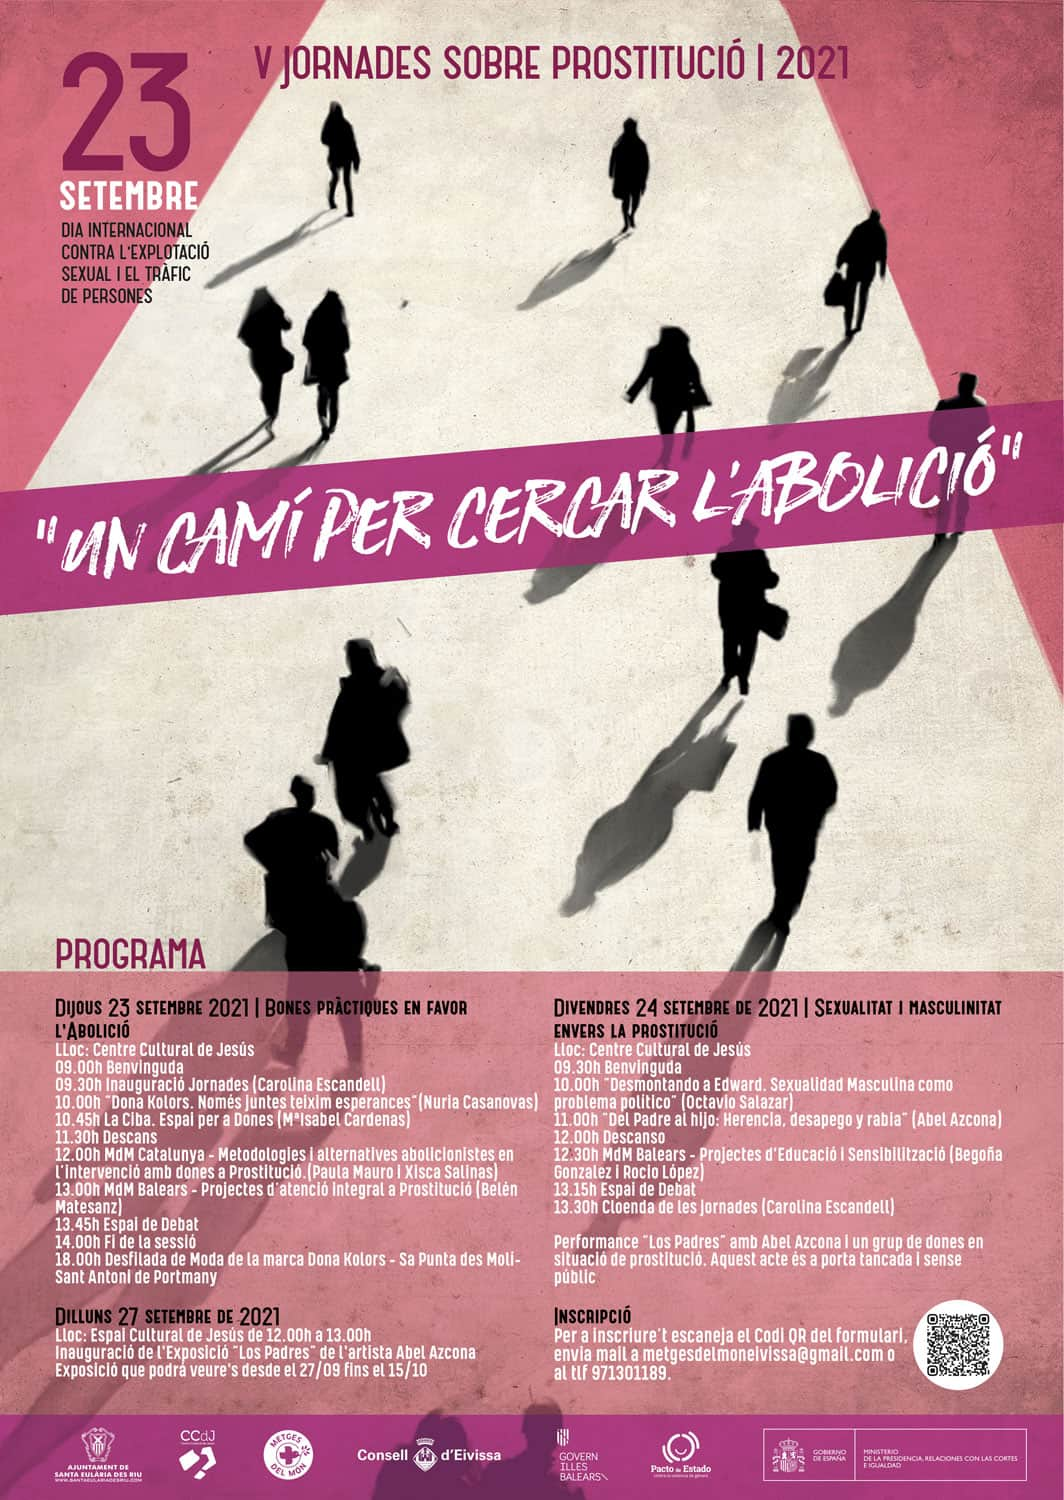 conference-about-prostitution-ibiza-2021-welcometoibiza